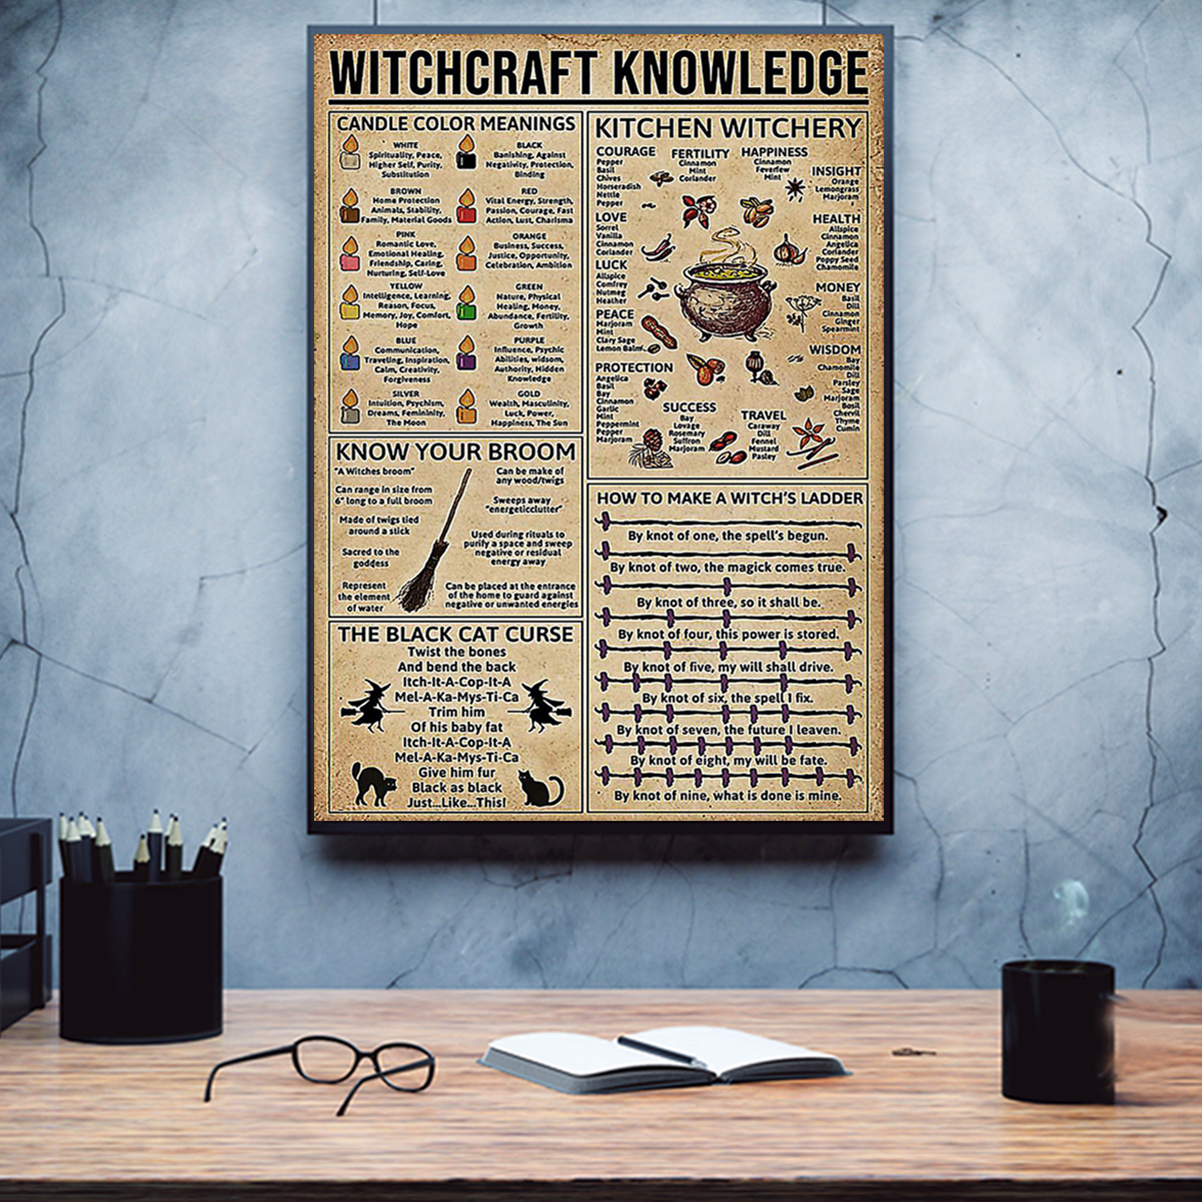 Witchcraft knowledge poster A1